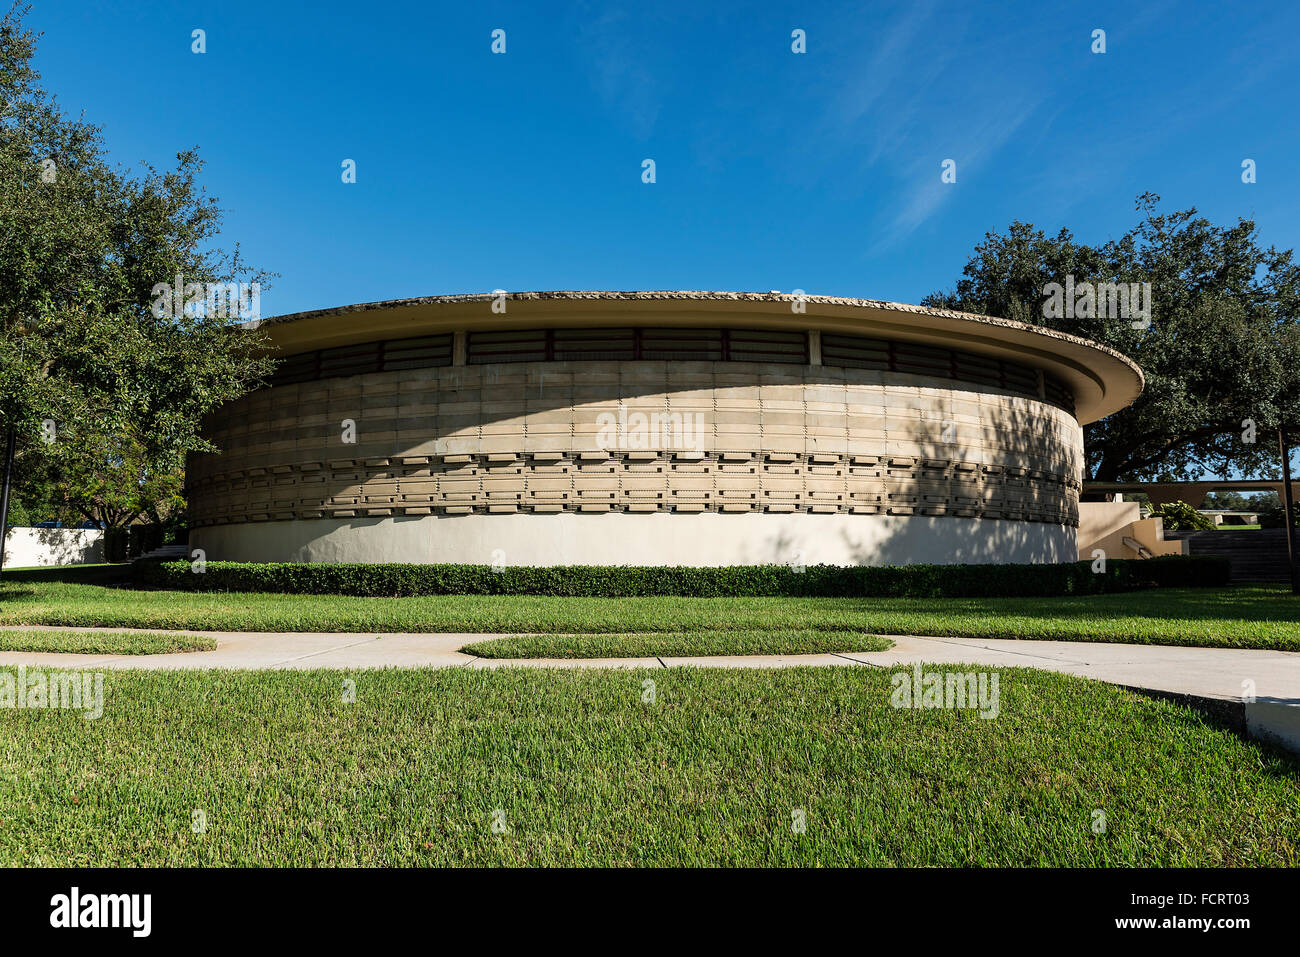 Thad Buckner Building designed by Frank Loyd Wright for Florida Southern College, Lakeland, Florida, USA - Stock Image